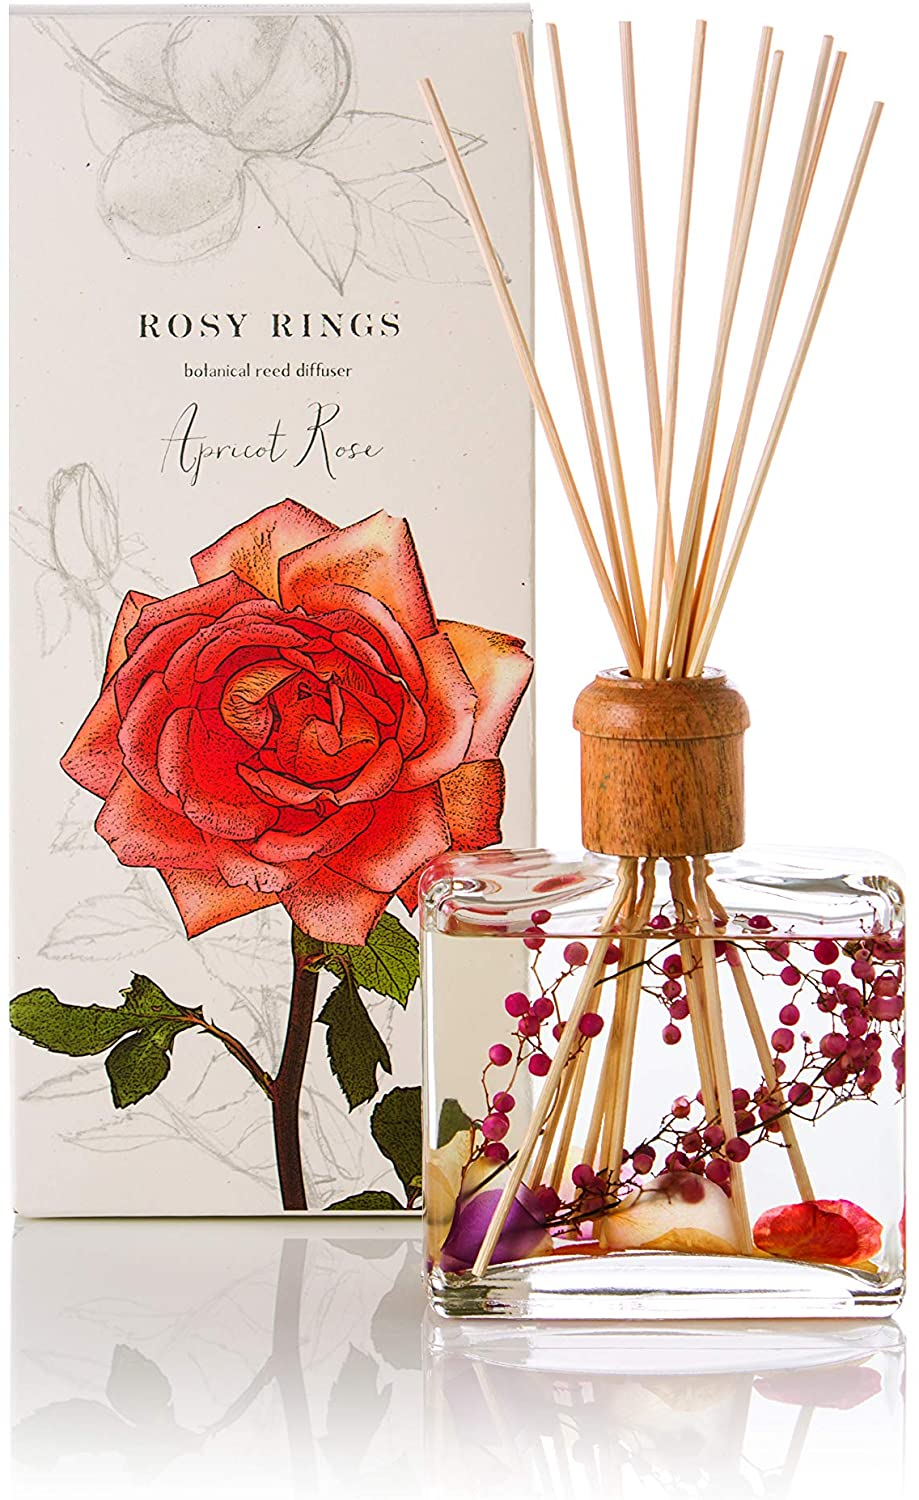 Rosy Rings Apricot Rose Diffuser